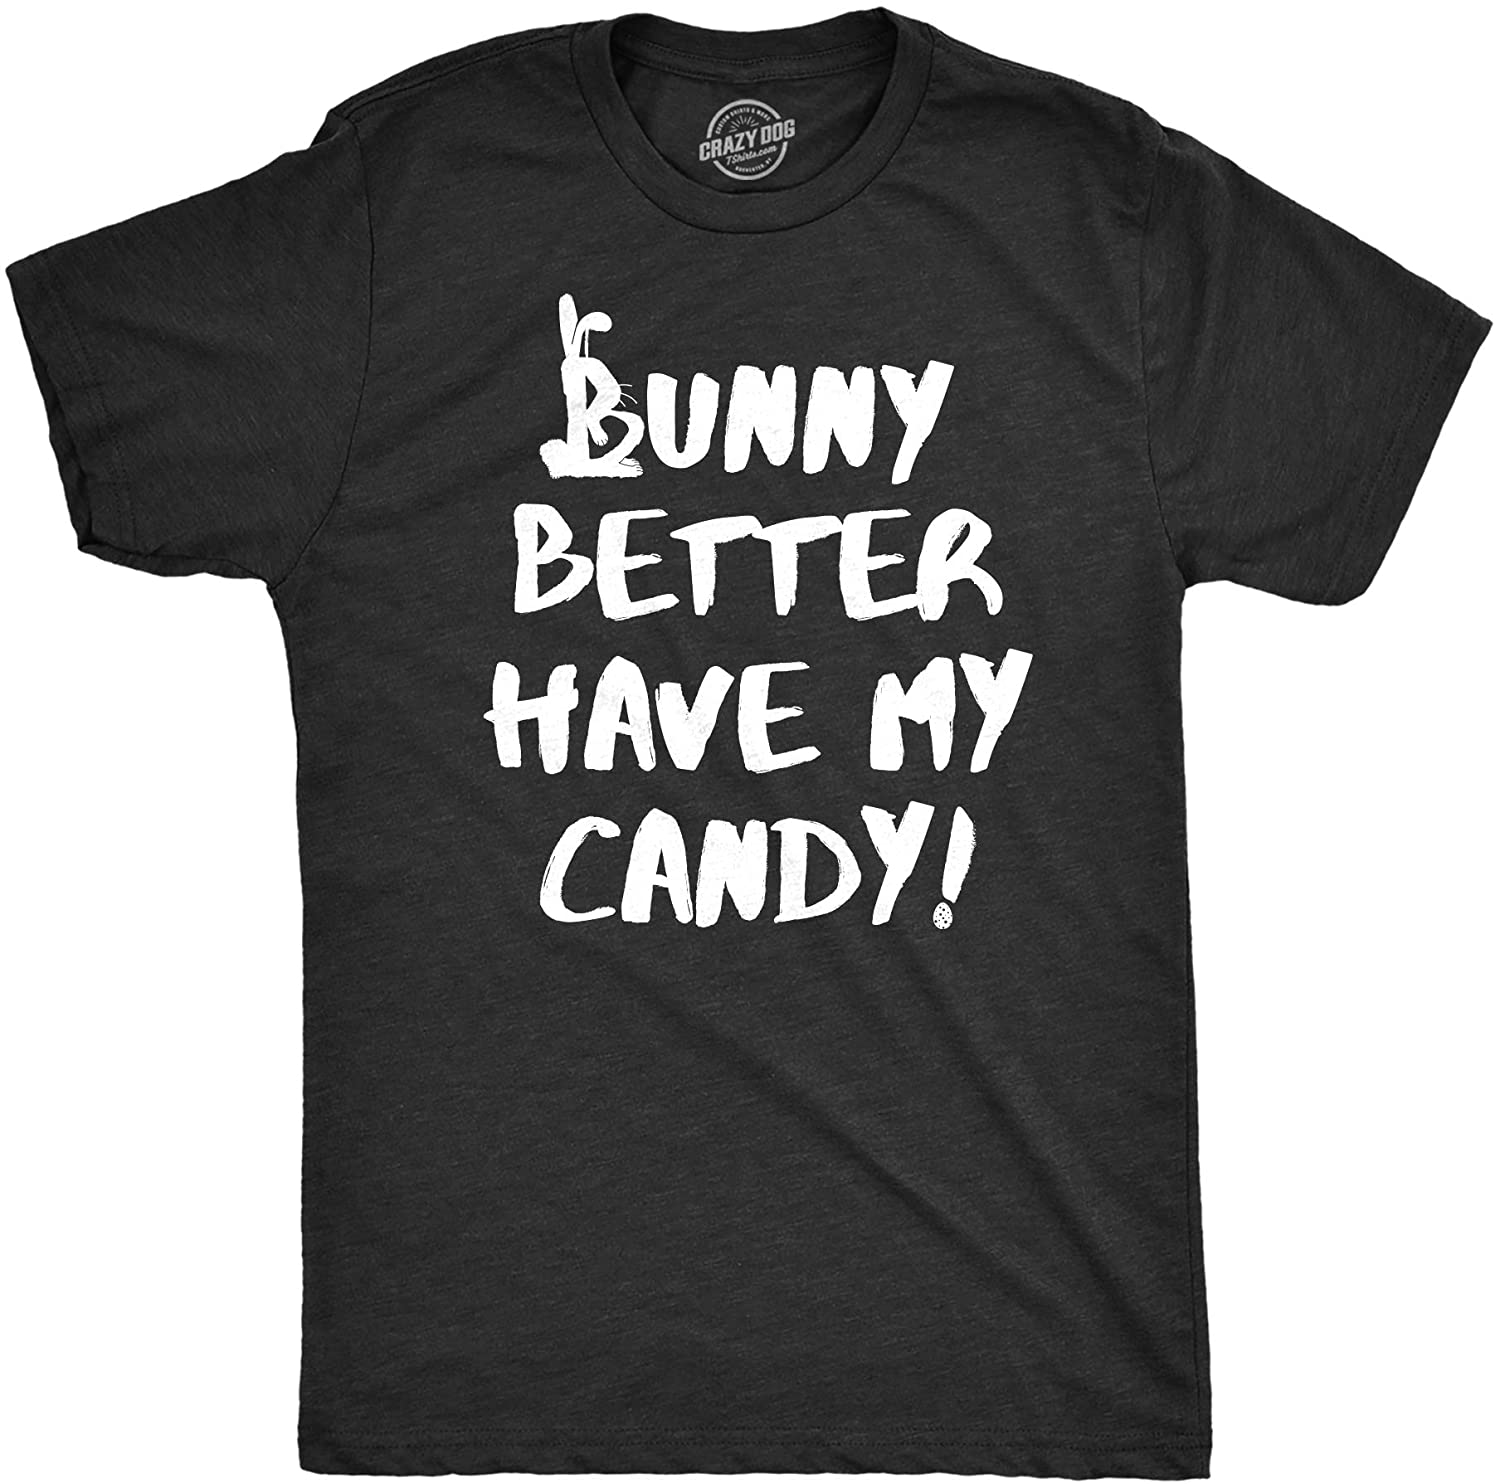 Mens Bunny Better Have My Candy Tshirt Funny Easter Bunny Holiday Novelty Tee